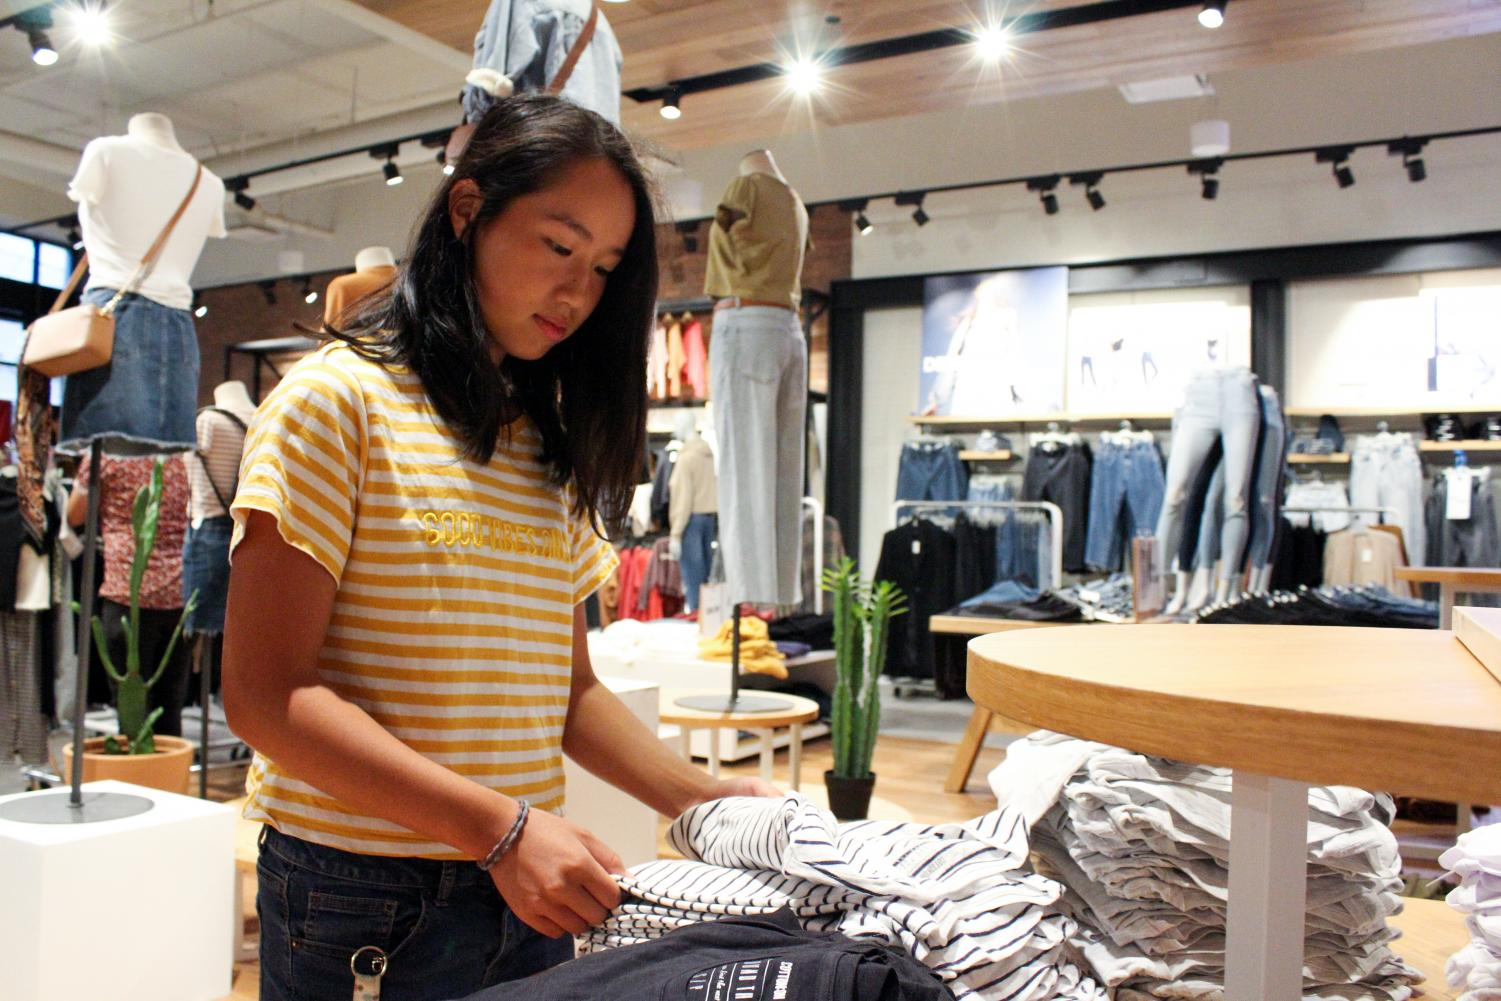 THE DEVIL WEARs POLYMERS: Senior Ally Chao shops at Cotton On.